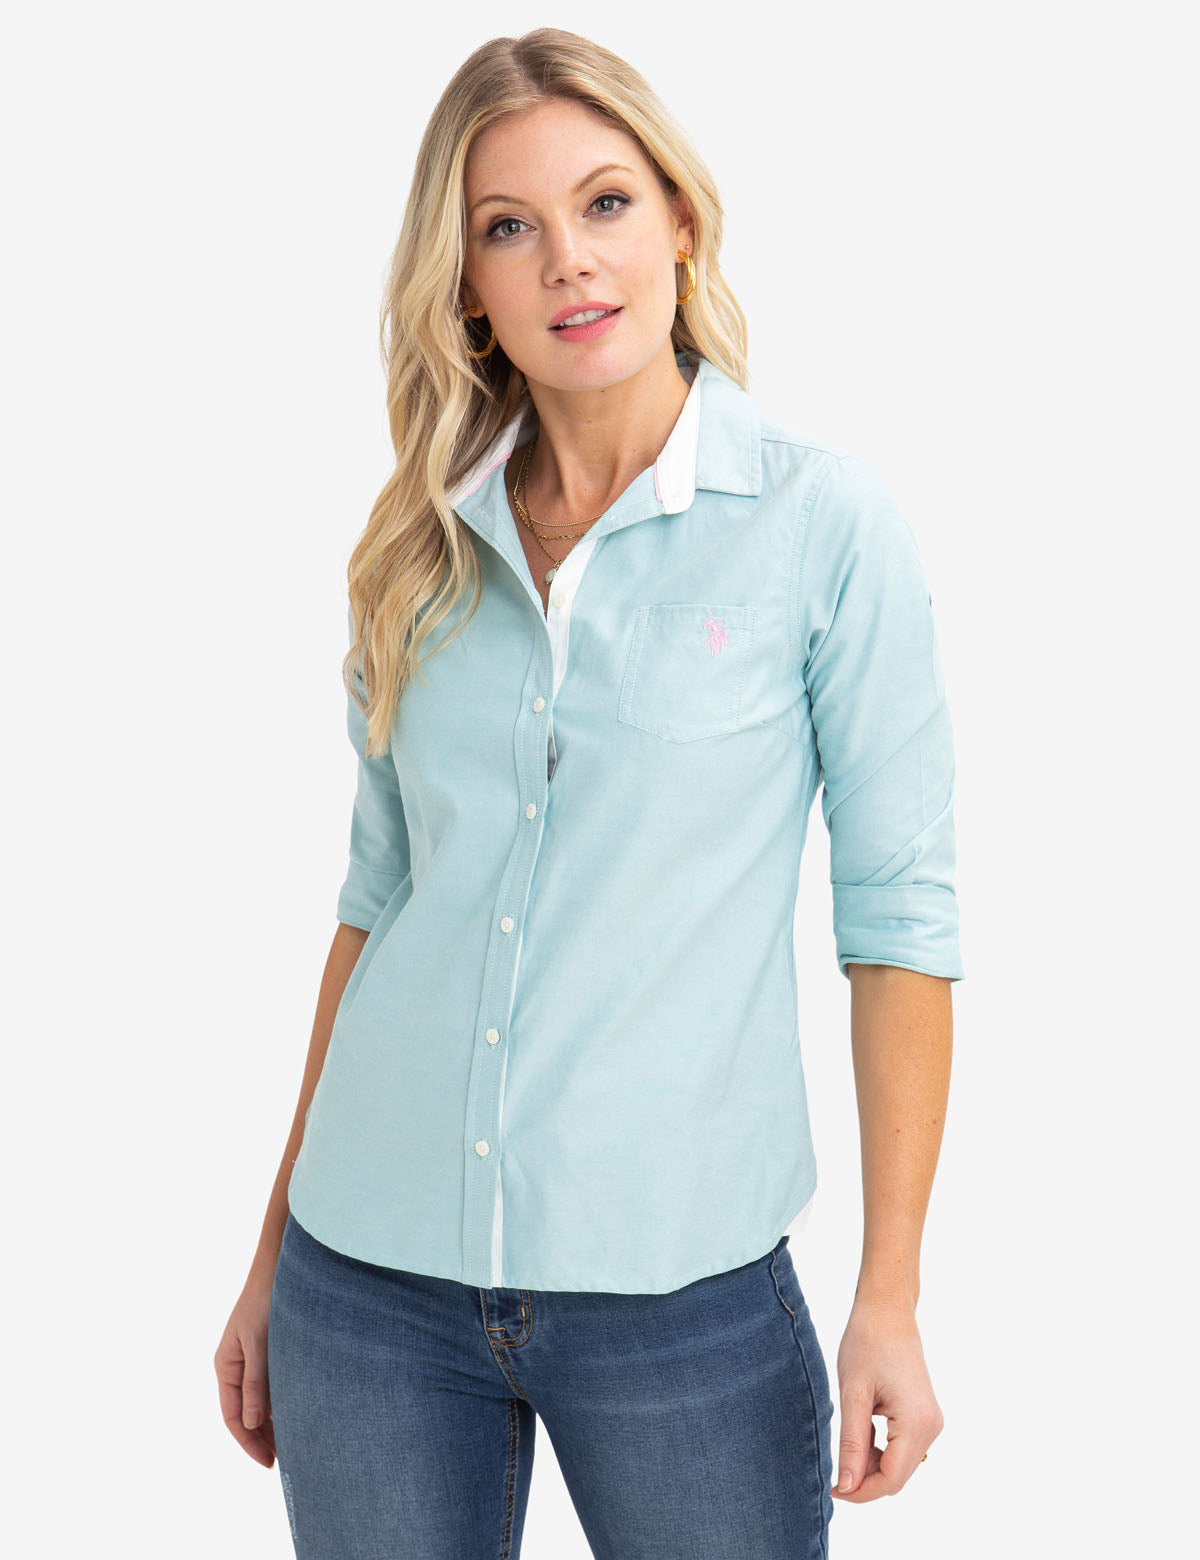 Solid Oxford Shirt - U.S. Polo Assn.